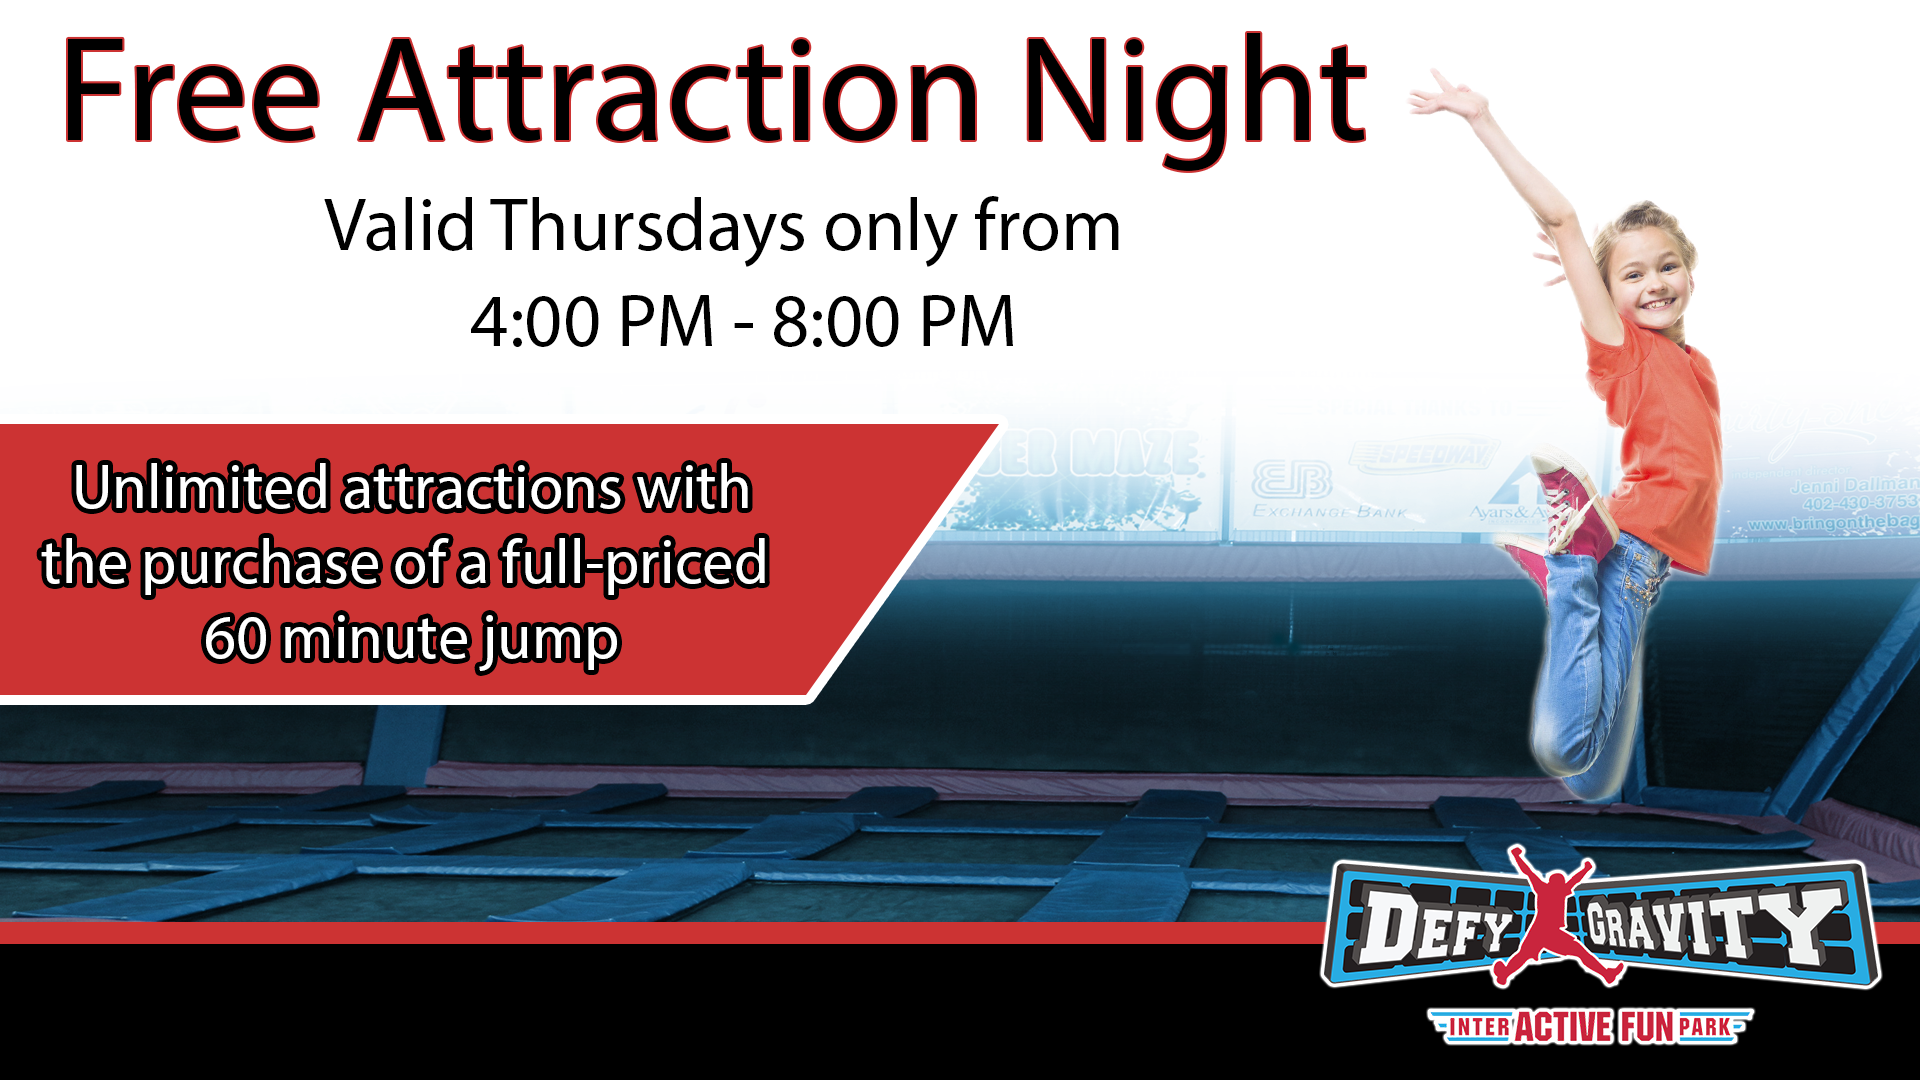 Free Attraction Night